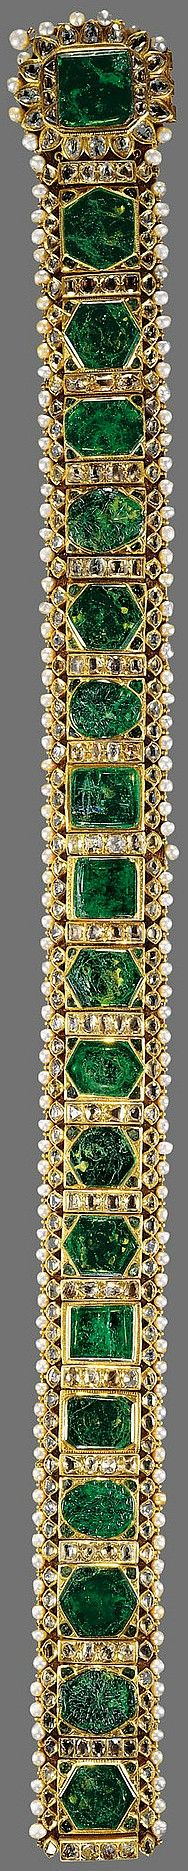 Emerald Girdle of Maharajah Sher Singh - India, c. 1840 - emeralds inherited from Ranjit Singh, diamonds, pearls, gold, fabric and silver-gilt thread - taken (as part of the Lahore Treasury) by the Directors of the East India Company who gave it to Queen Victoria in 1851